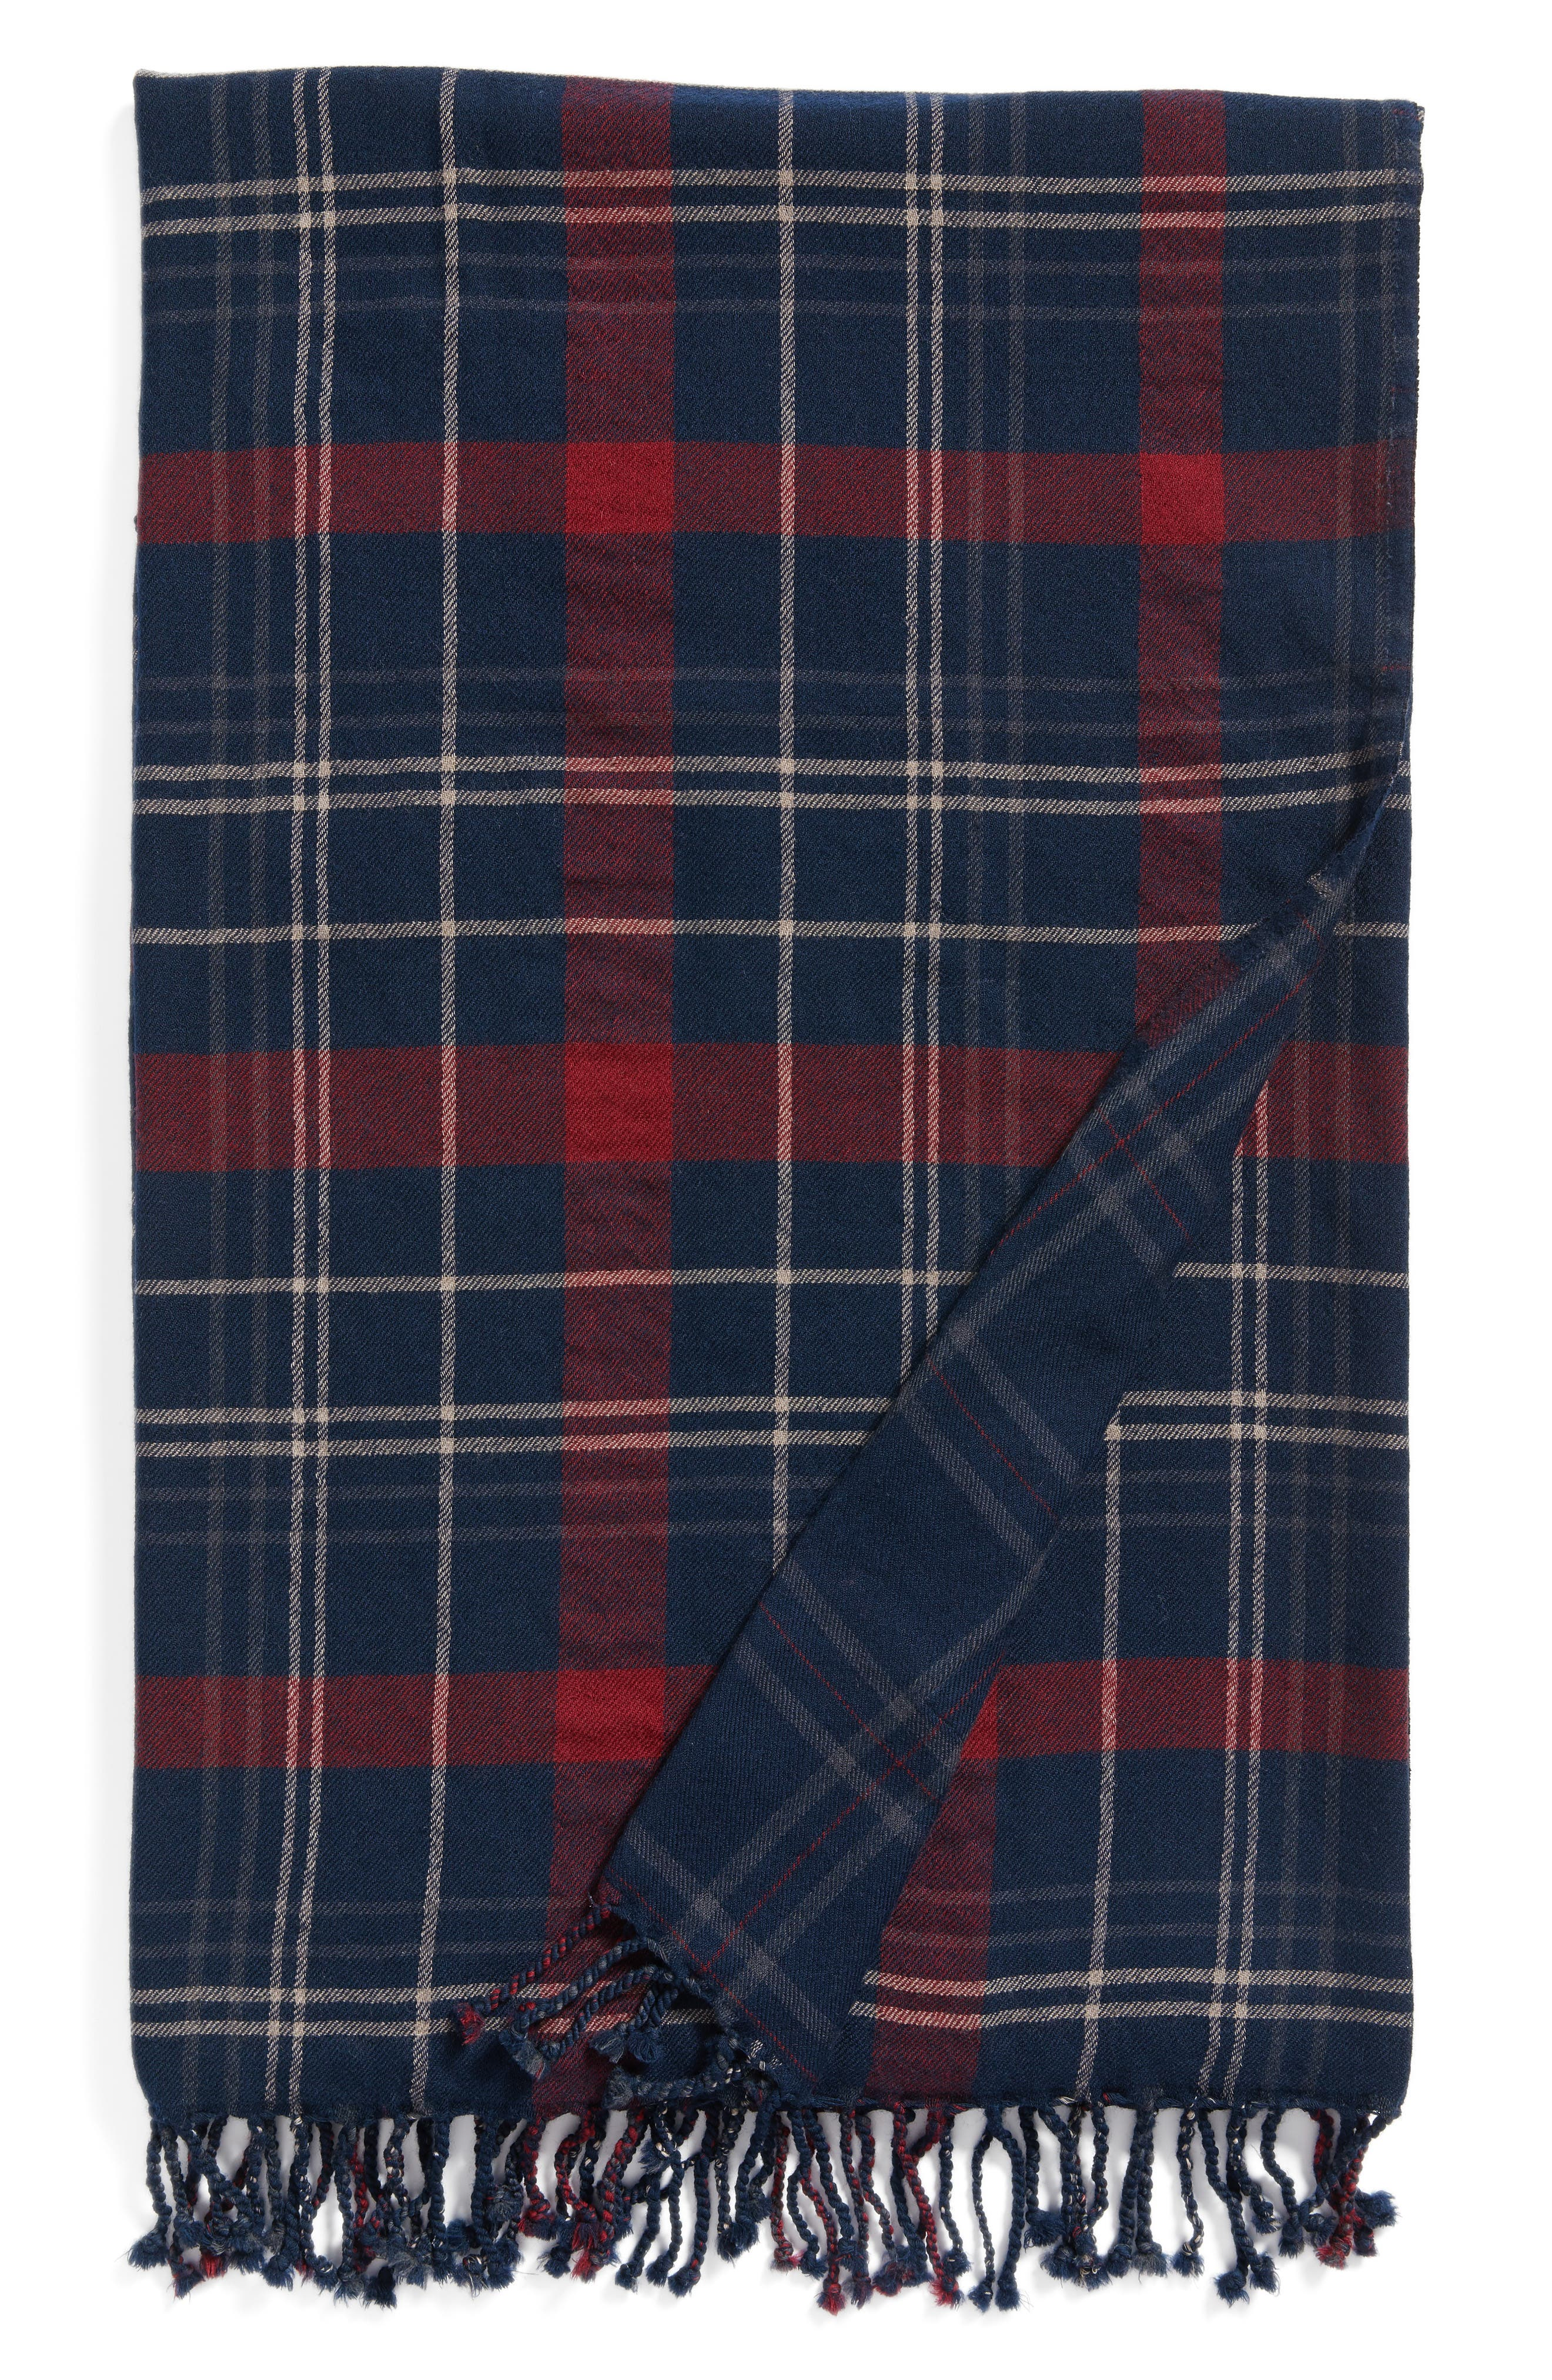 Tartan Double Face Merino Wool Throw,                         Main,                         color, NAVY MAROON TARTAN